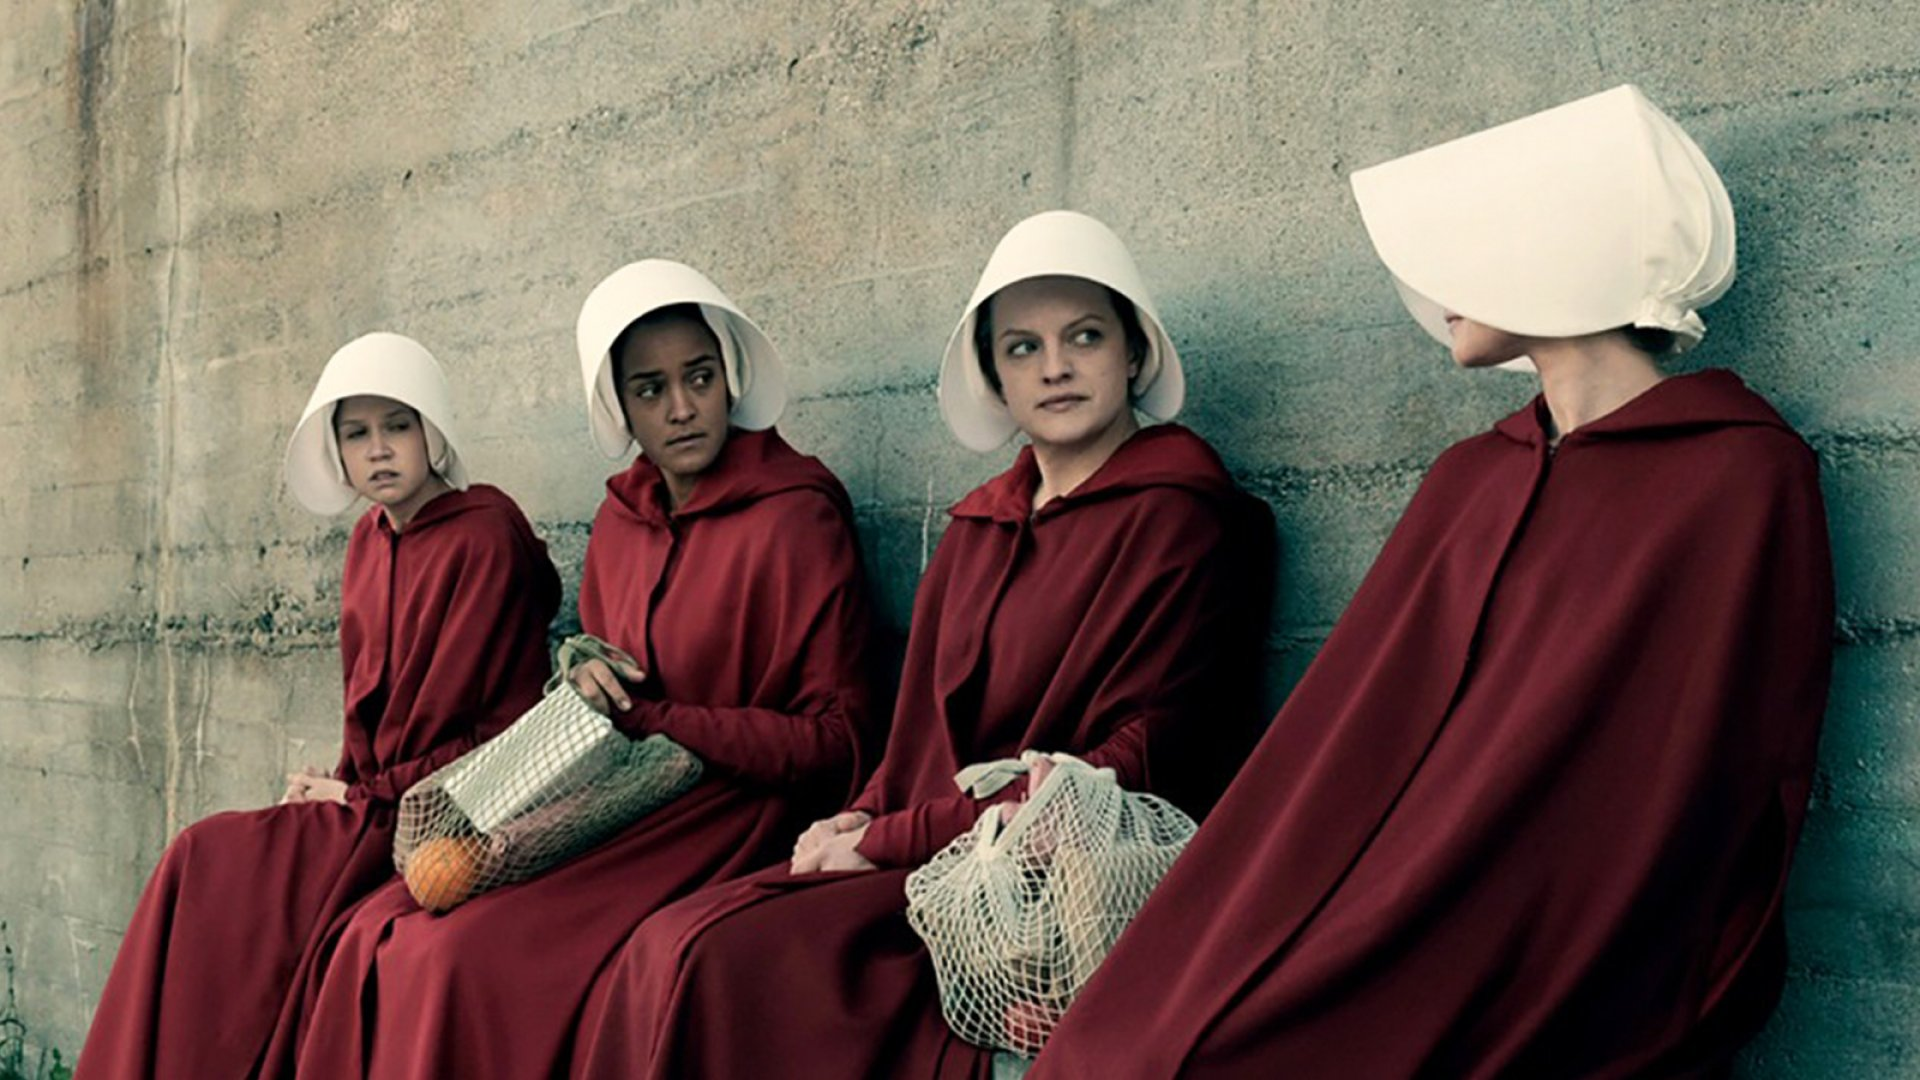 The Internet Is Using 'The Handmaid's Tale' Memes to Voice Political Opinions (Here's What Brands Can Learn From It)